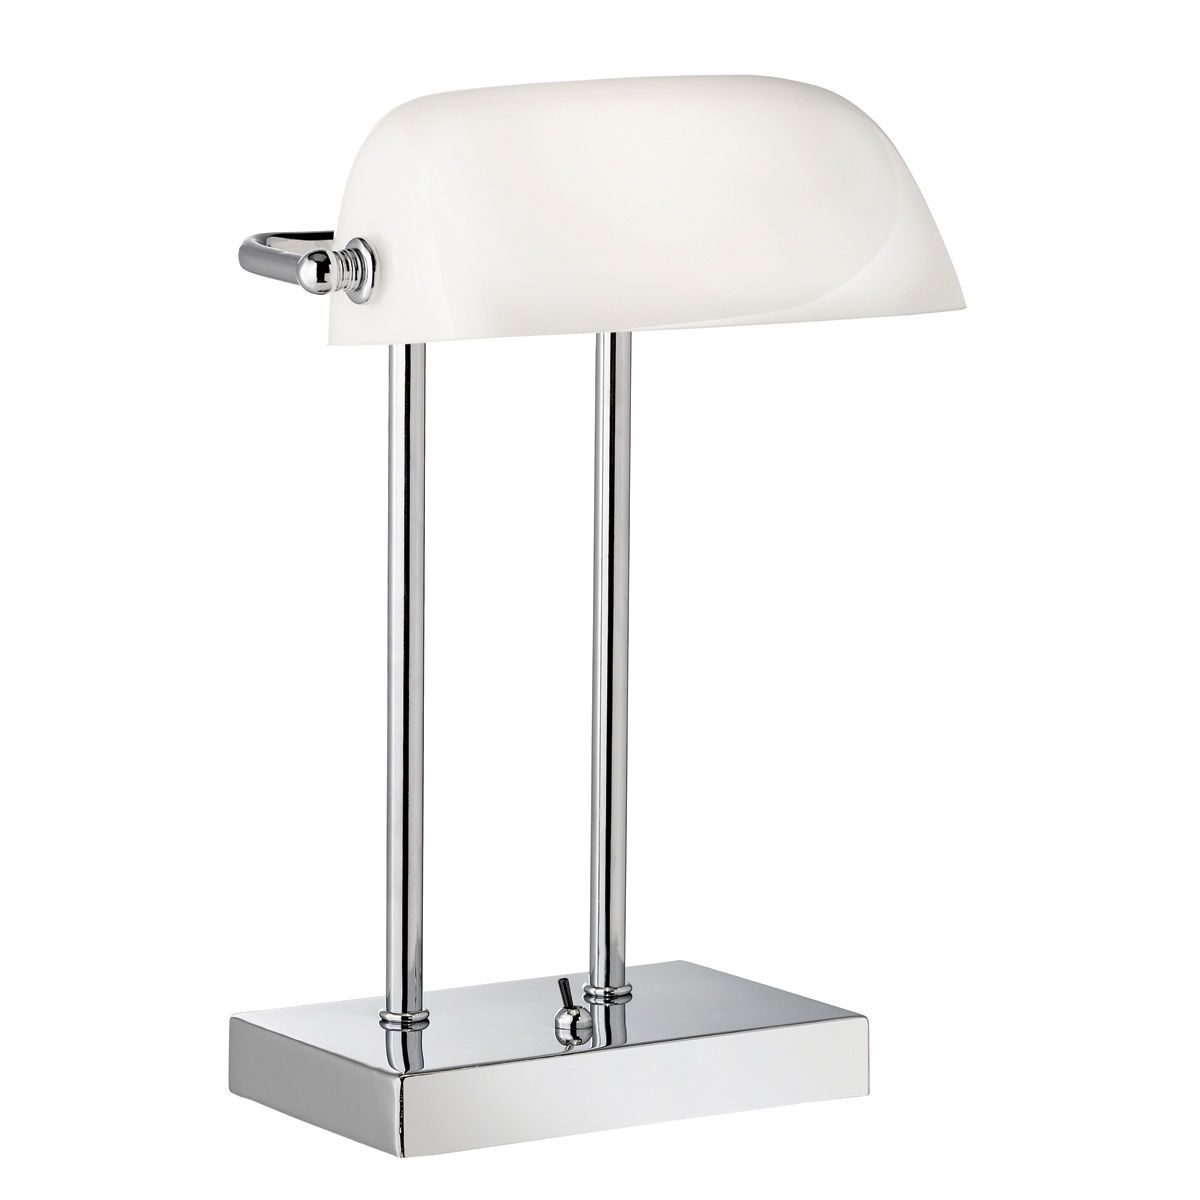 Bankers Style Chrome Table Lamp With White Glass Shade From Dushka Ltd London Uk Bankers Lamp Chrome Table Lamp Table Lamp